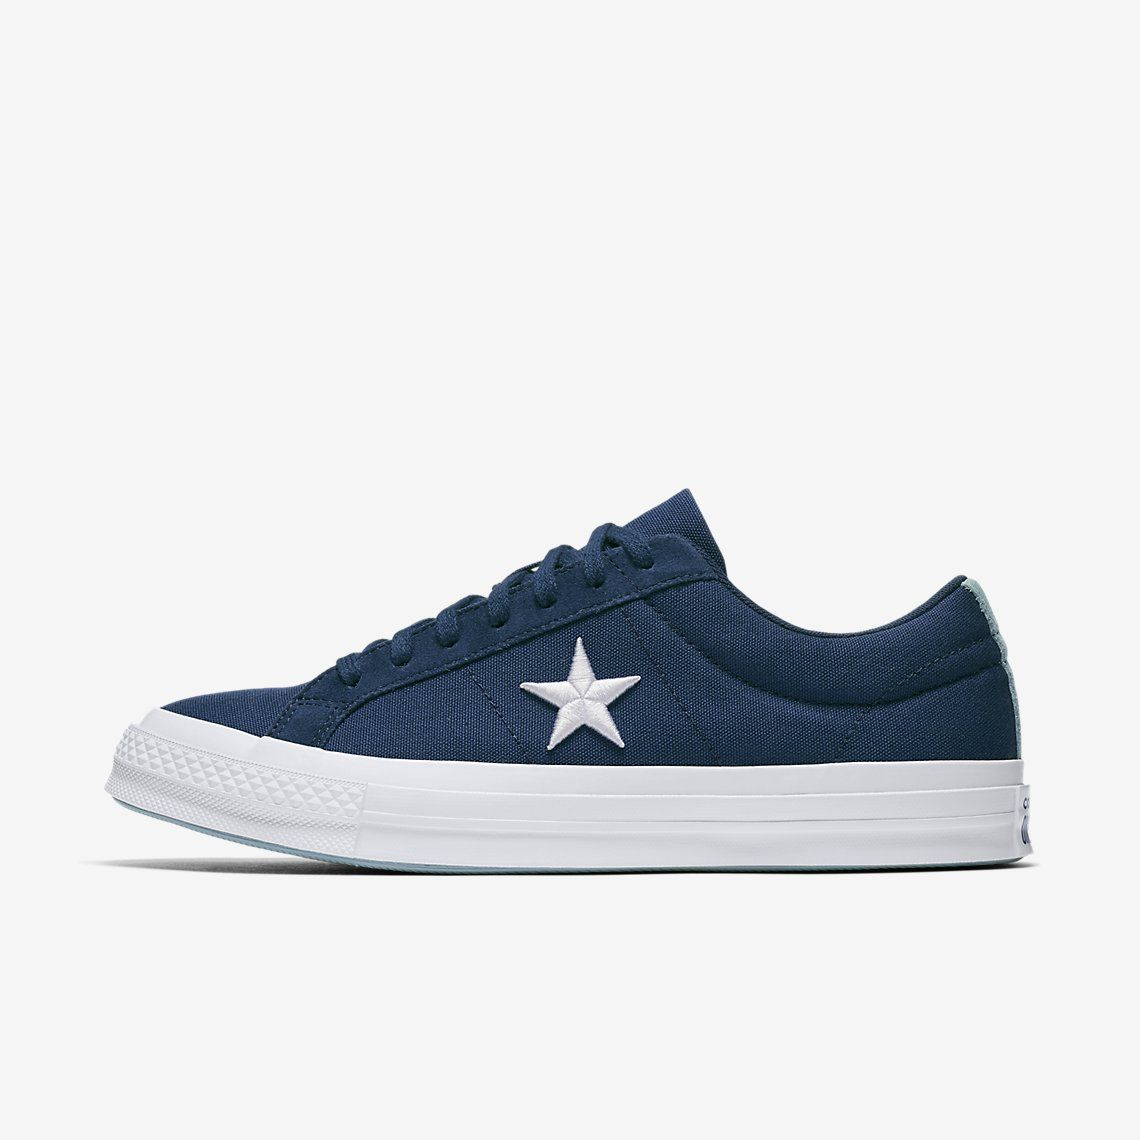 a5fa4f1b09d0 Converse One Star Country Pride Canvas Low Top Unisex Shoe. Nike.com ...